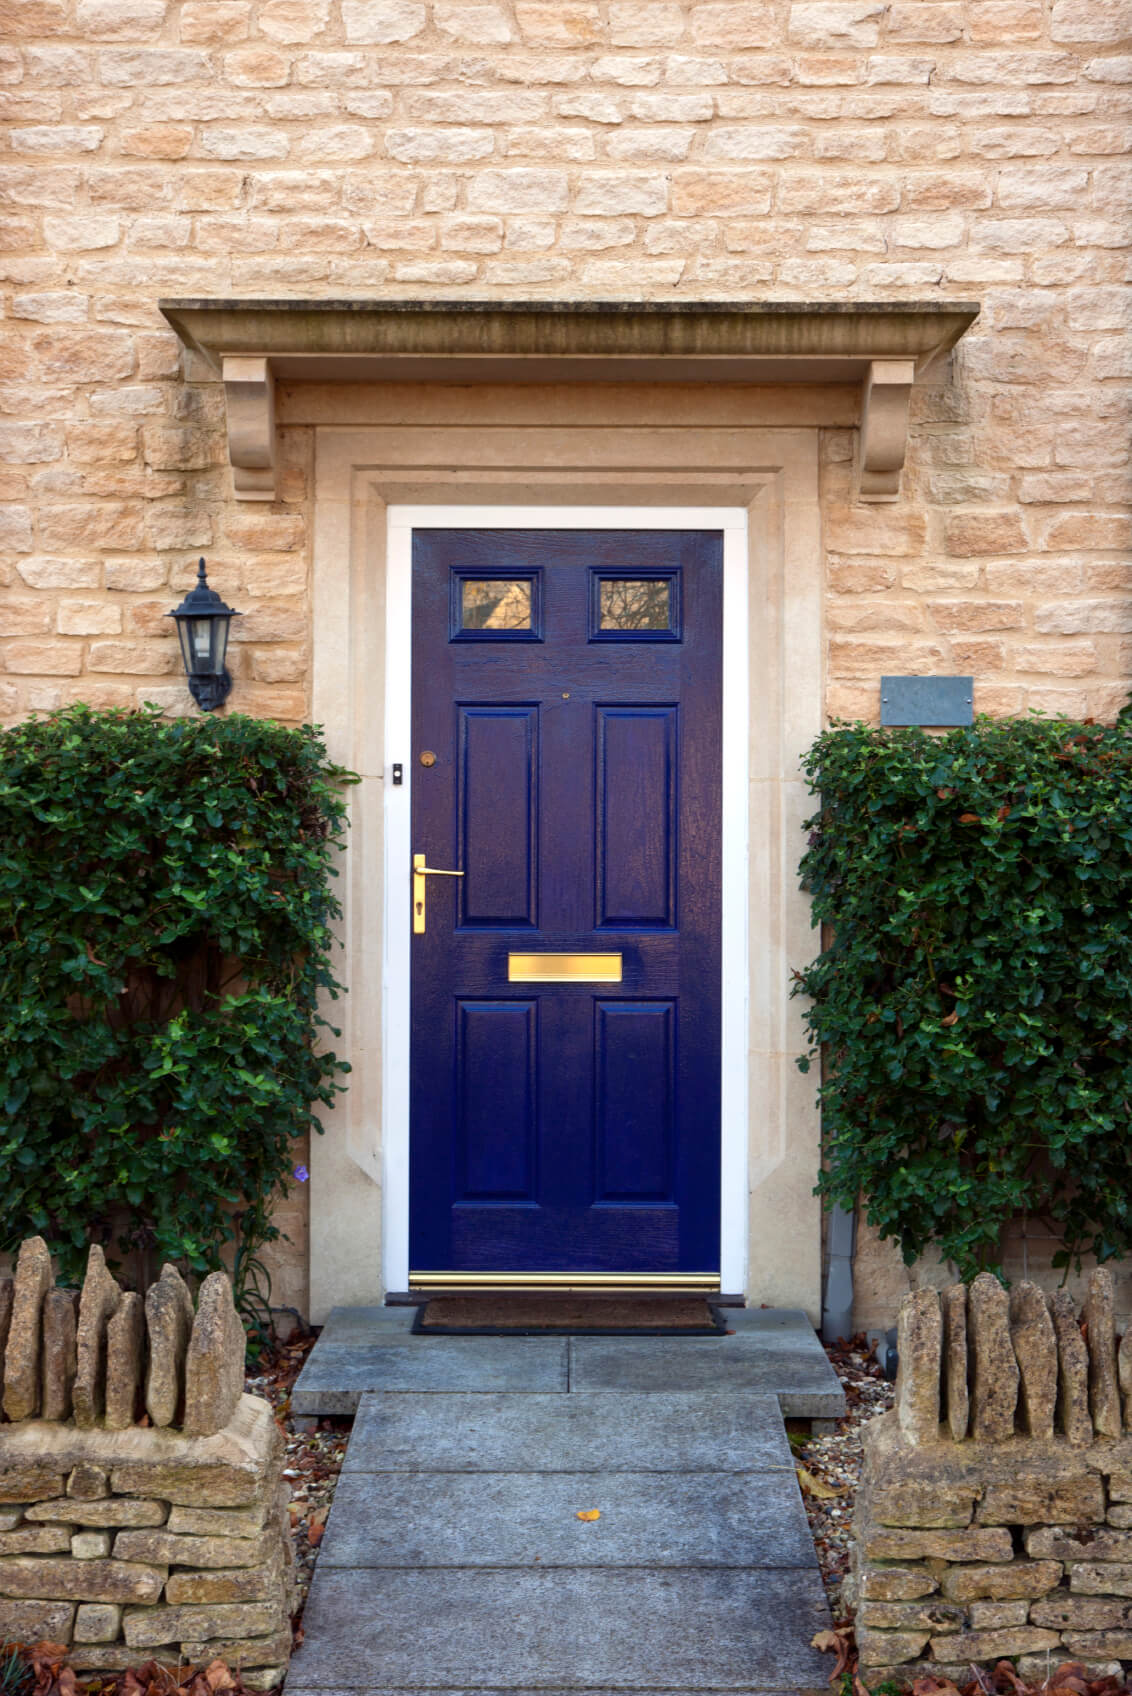 21 cool blue front doors for residential homes this home has a stone front exterior it has a blue wooden door with glass rubansaba